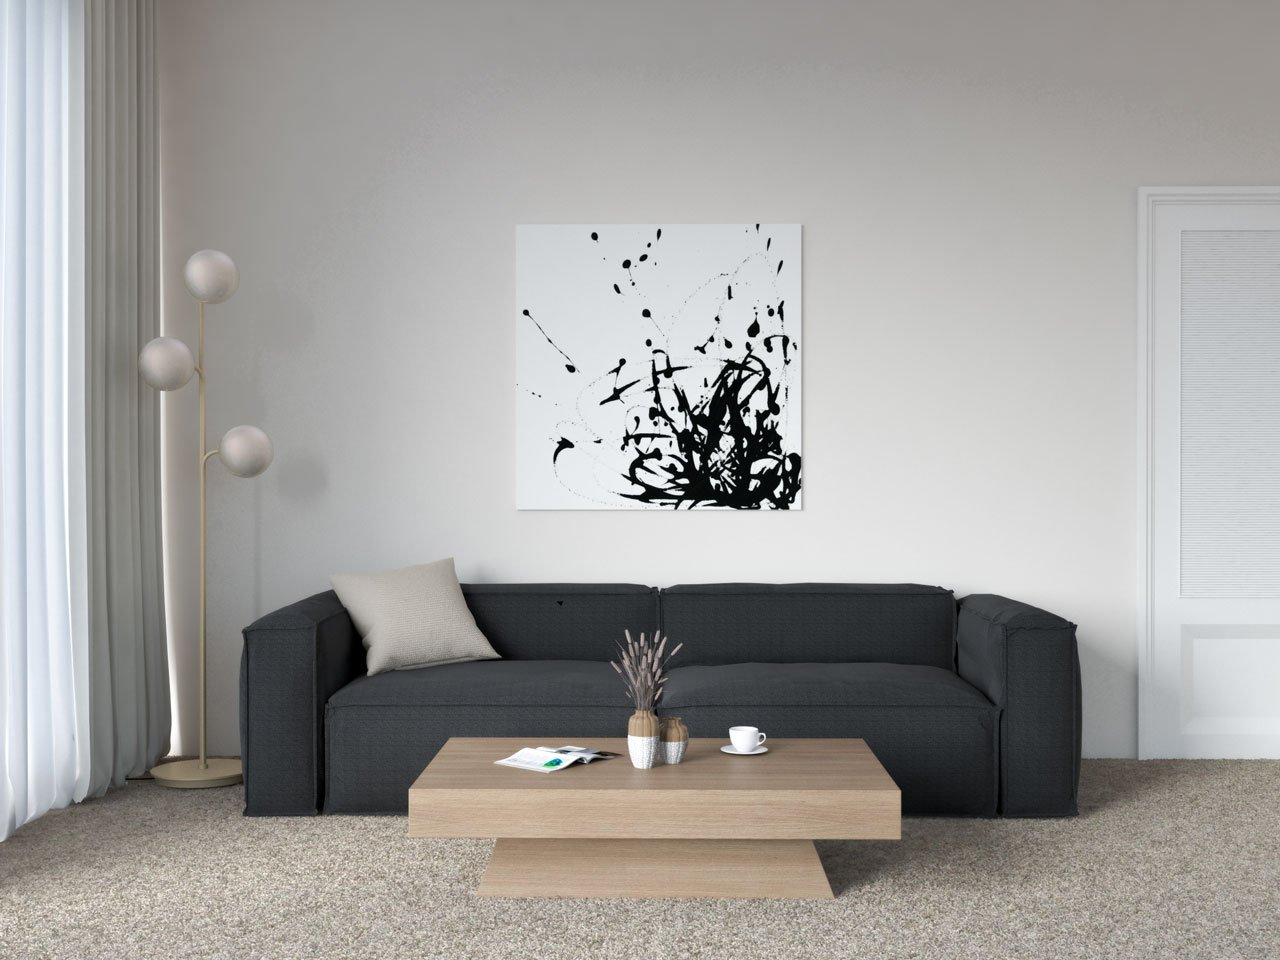 Black couch and tan carpet in living room